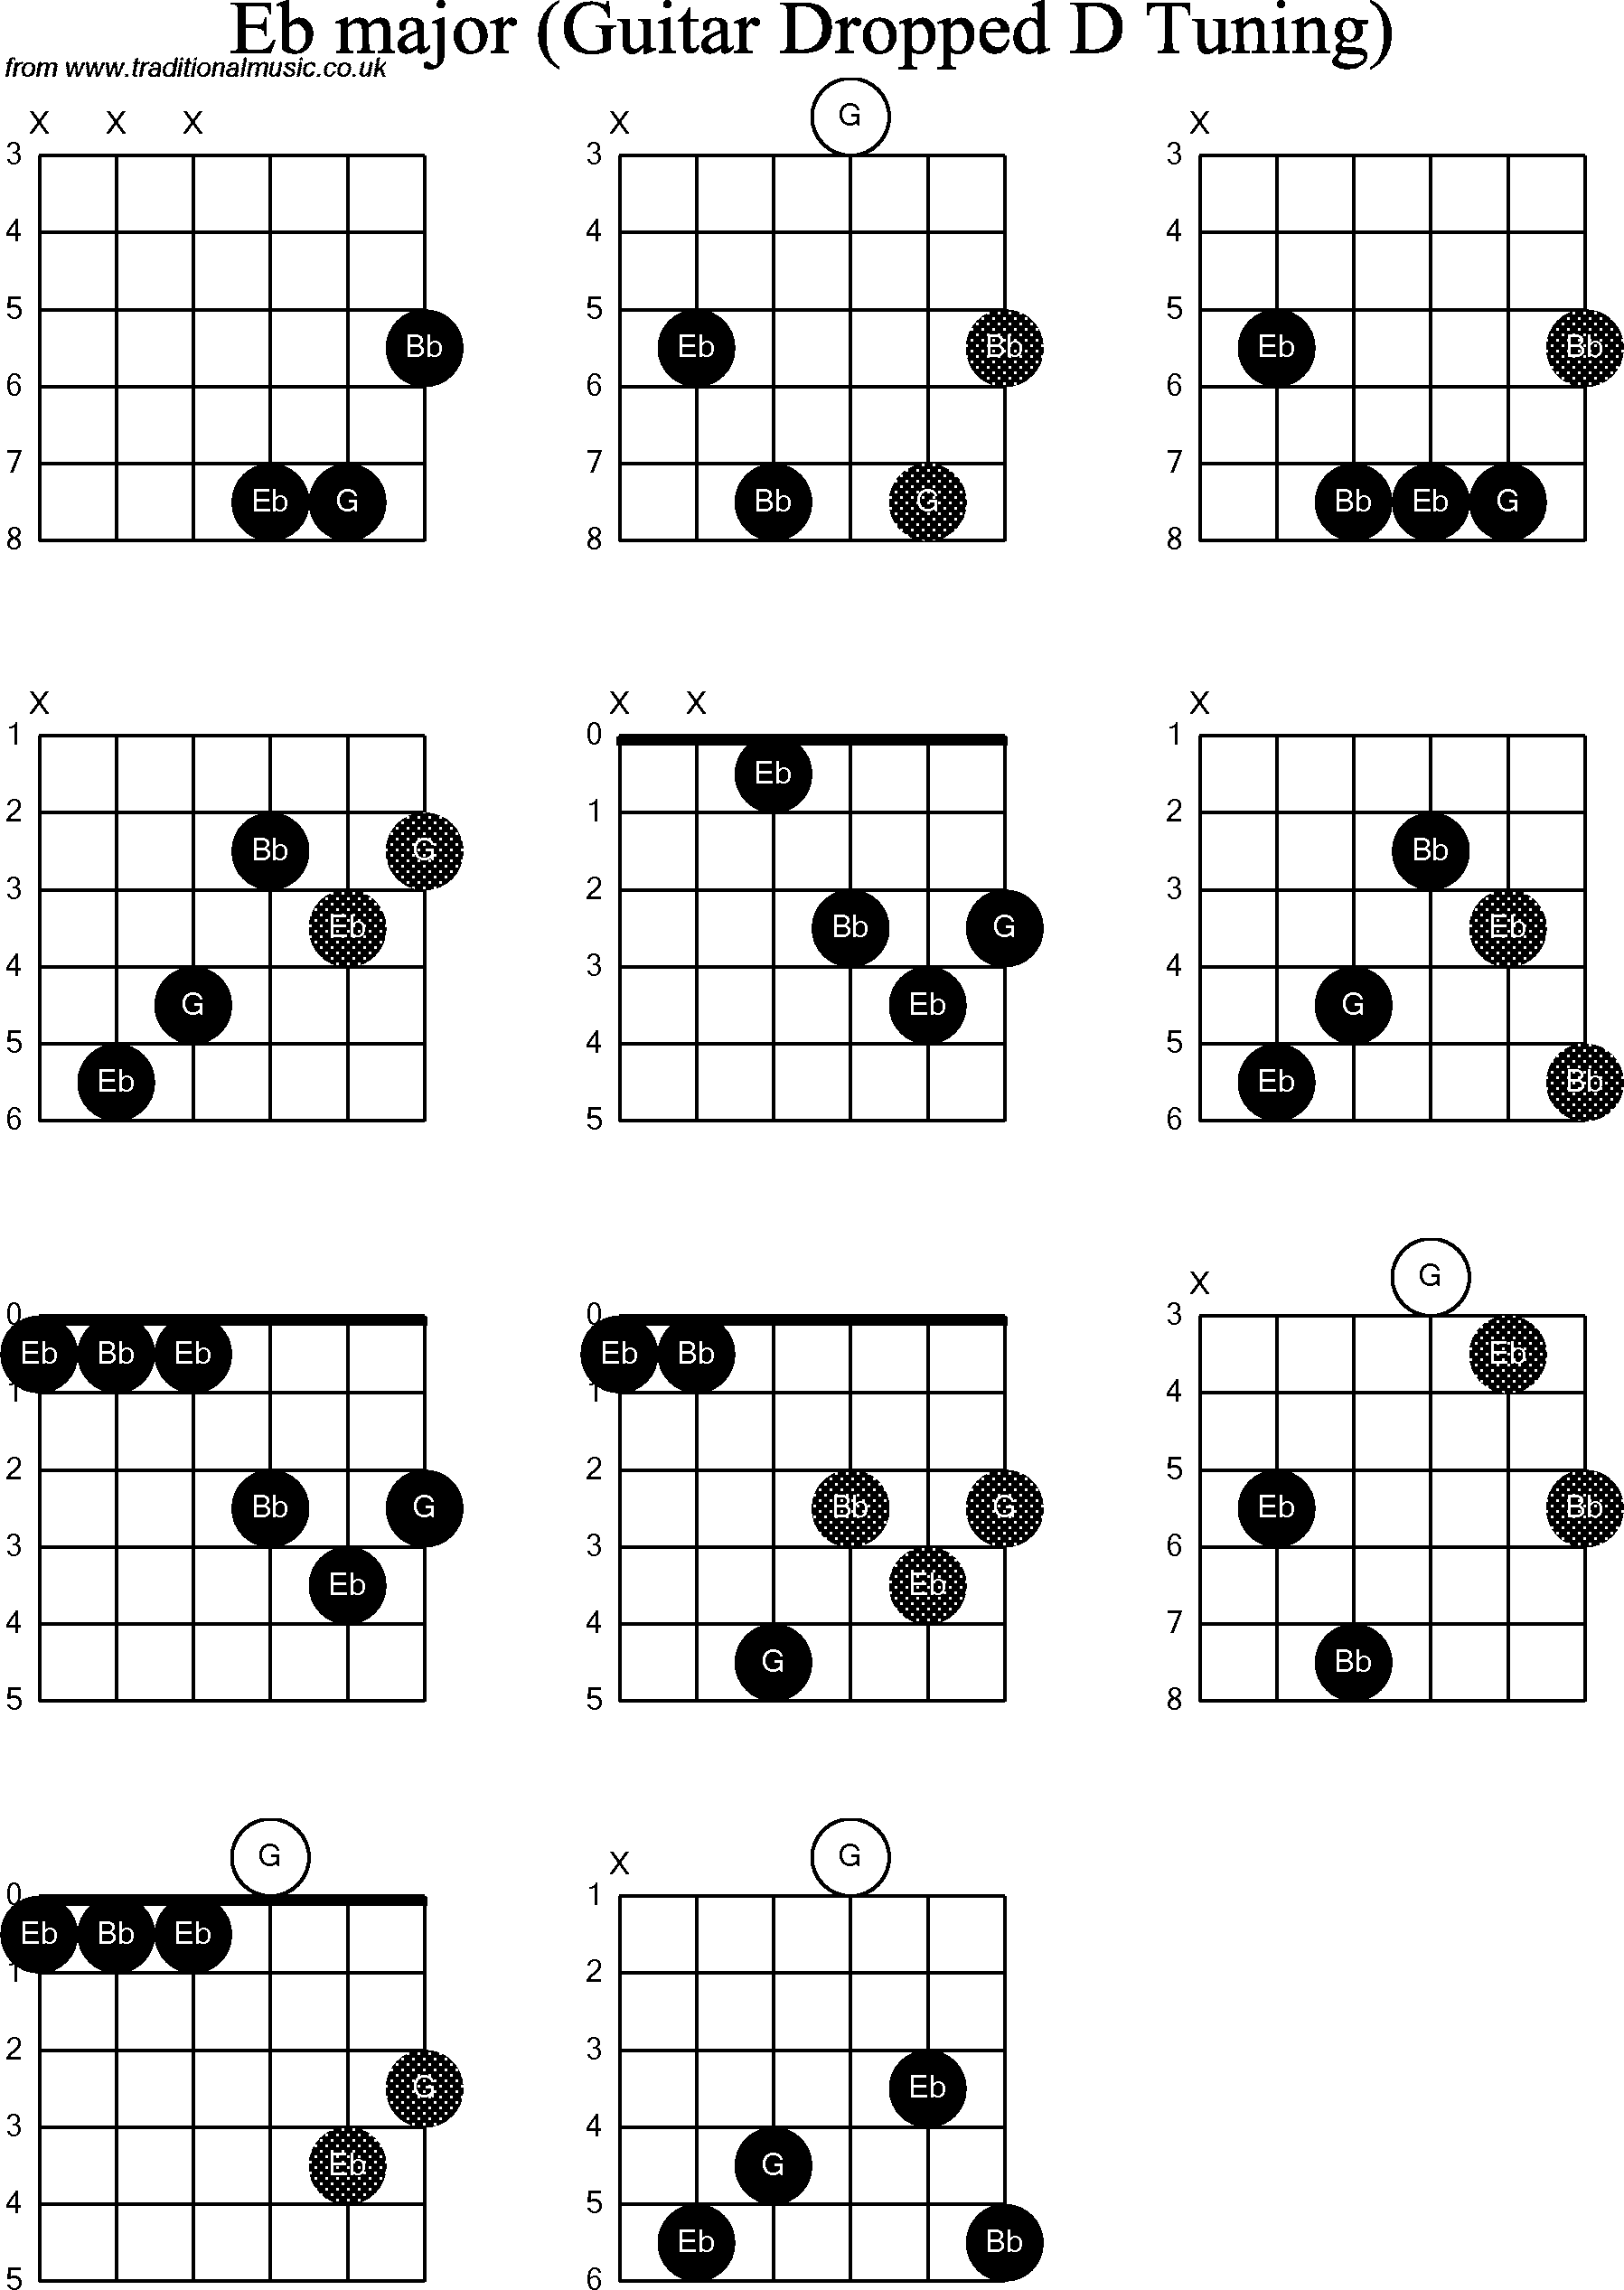 Chord Diagrams For Dropped D Guitardadgbe Eb